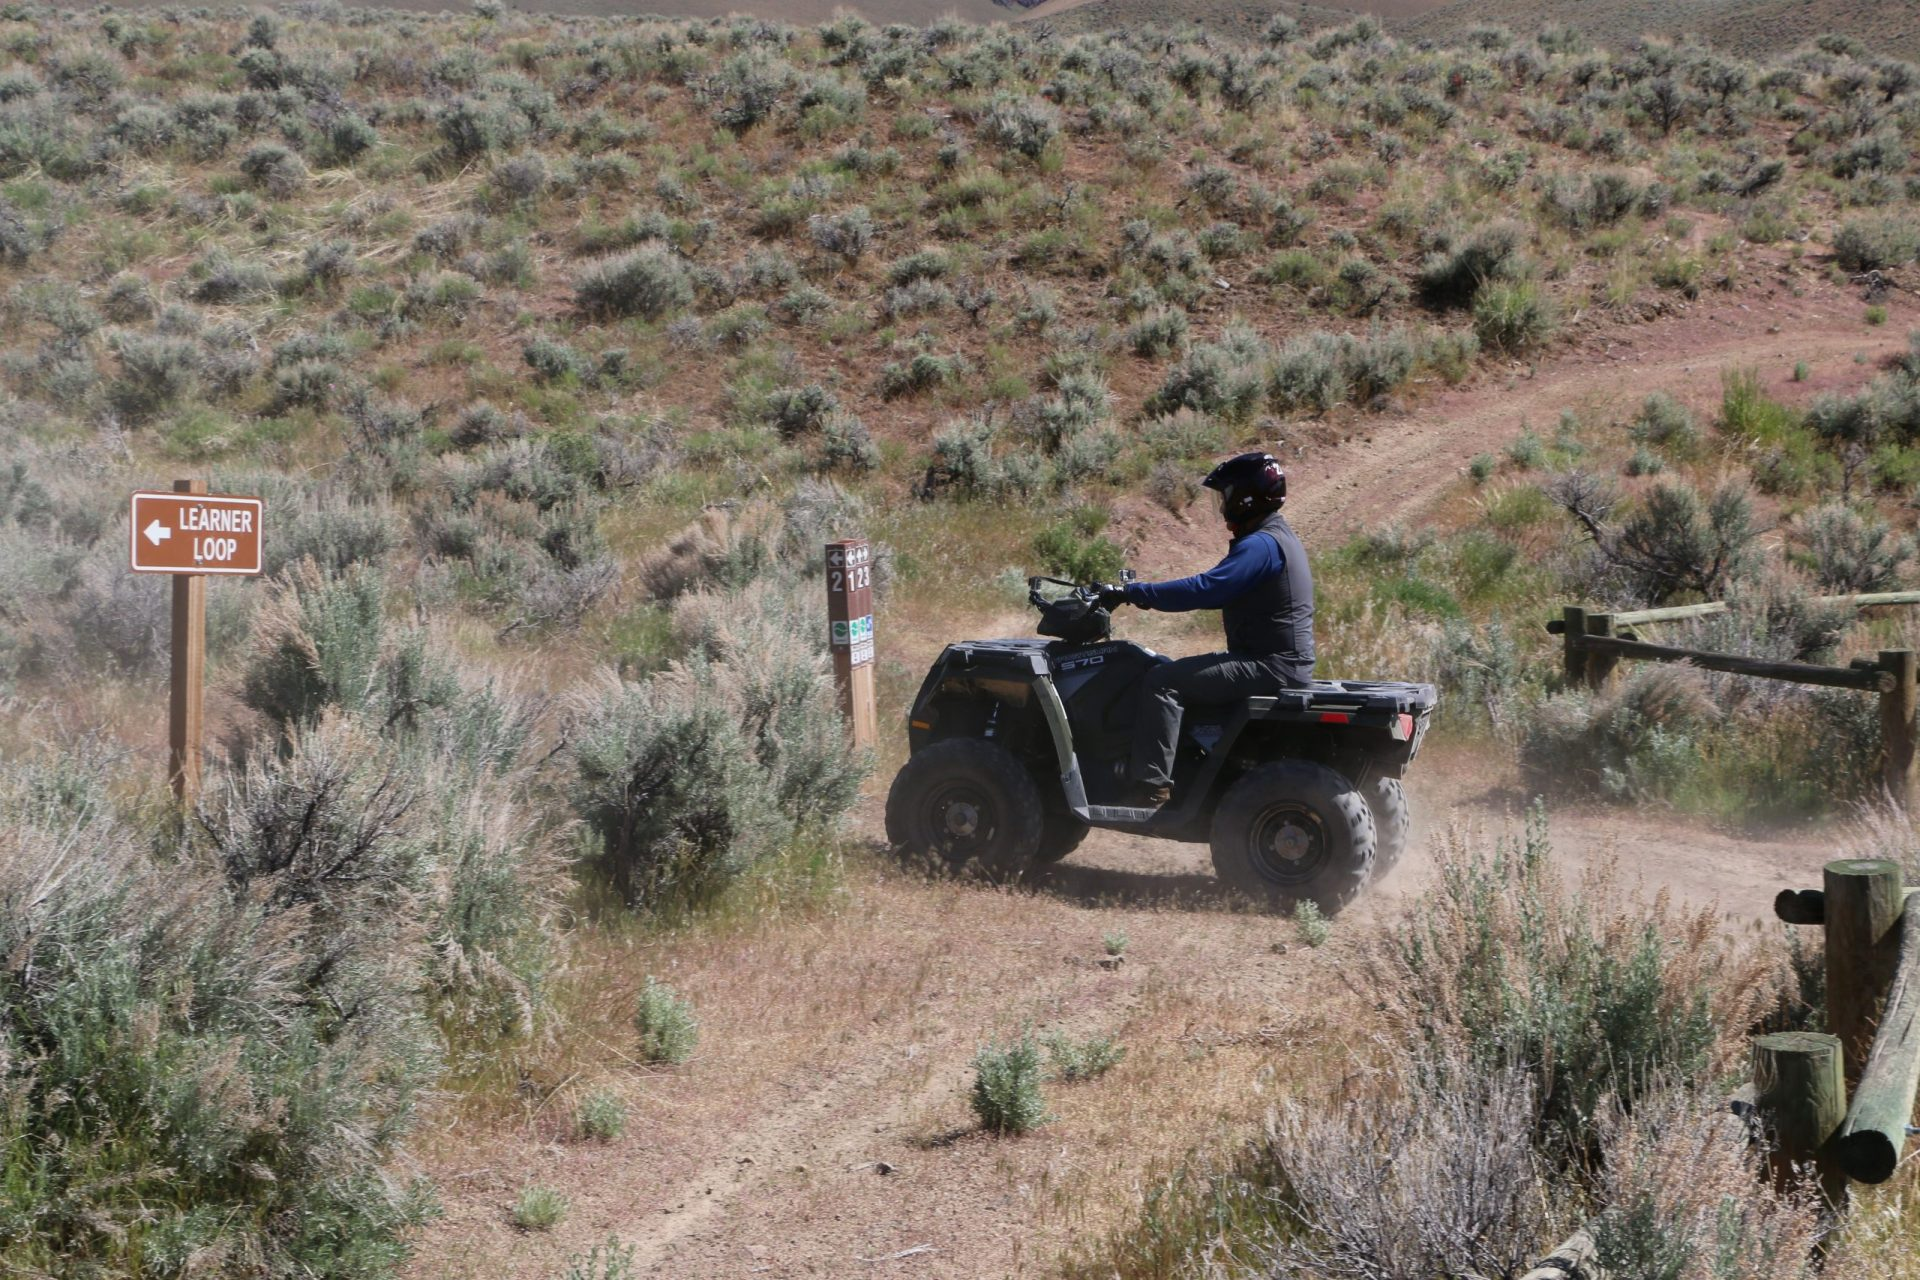 An OHV rider on the Lewis Canyon OHV Trail near Battle Mountain.